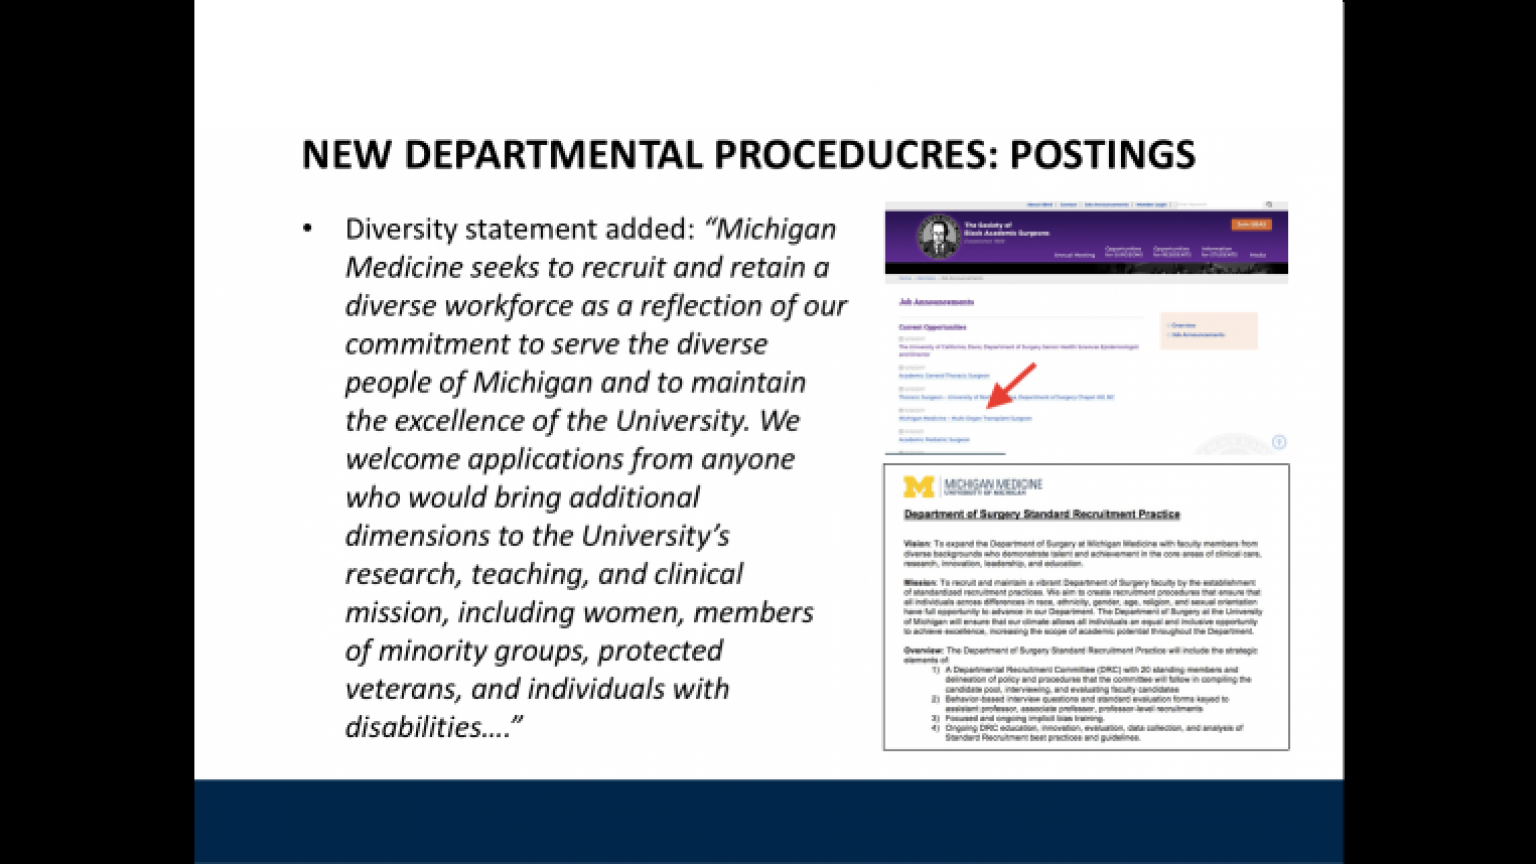 """New Departmental Procedures: Postings - thirty-seventh slide of """"This Is What We Stand For"""" presentation"""